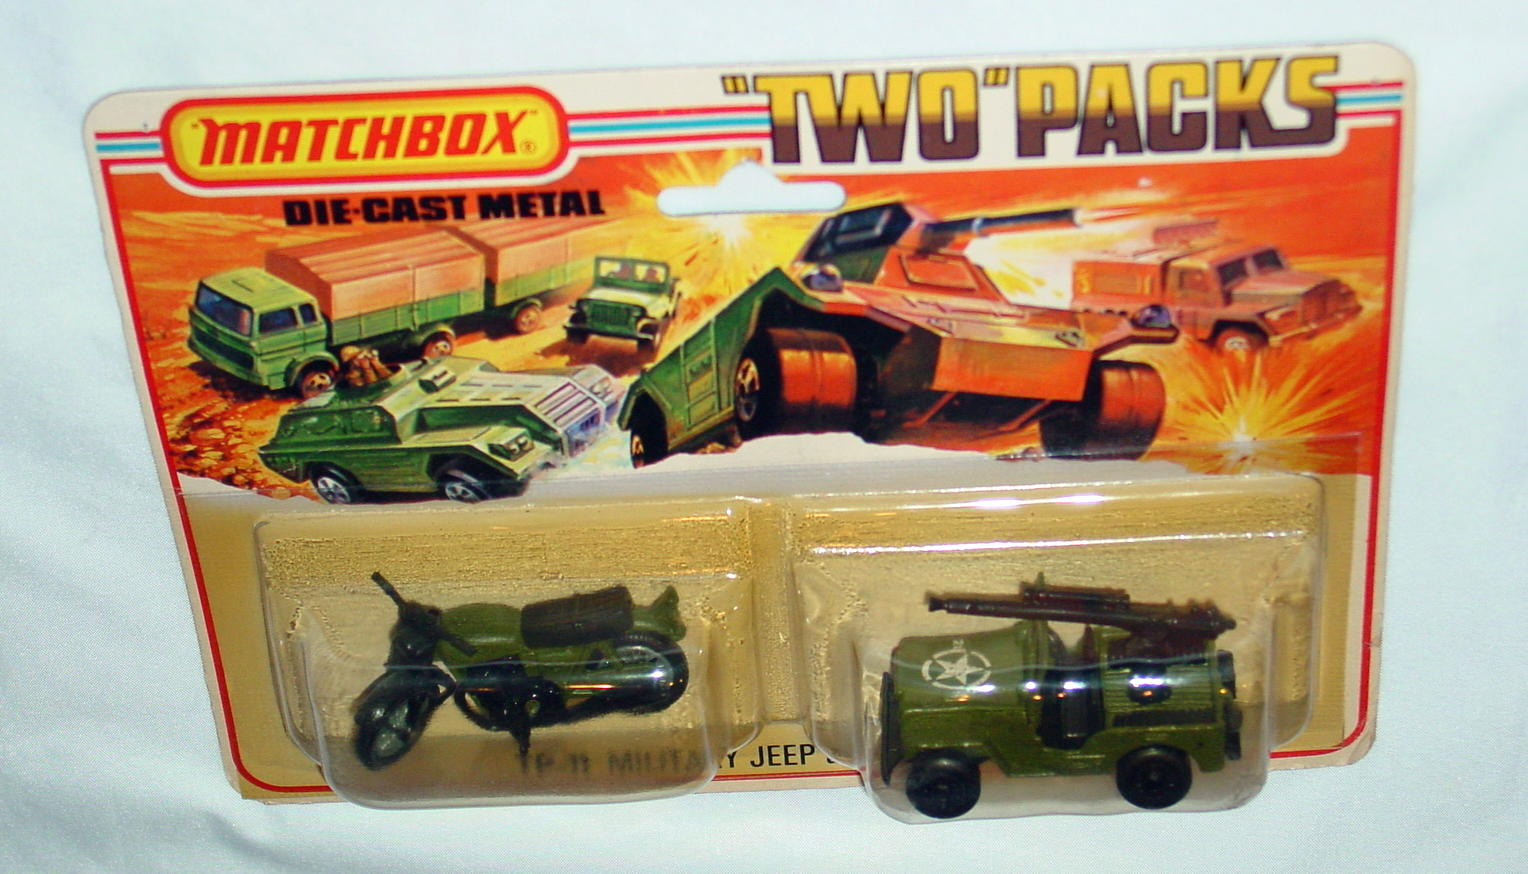 Twin Pack 11 A 4 - Olive RNII Jeep 21*11 olive 18B7 Hondarora open BP